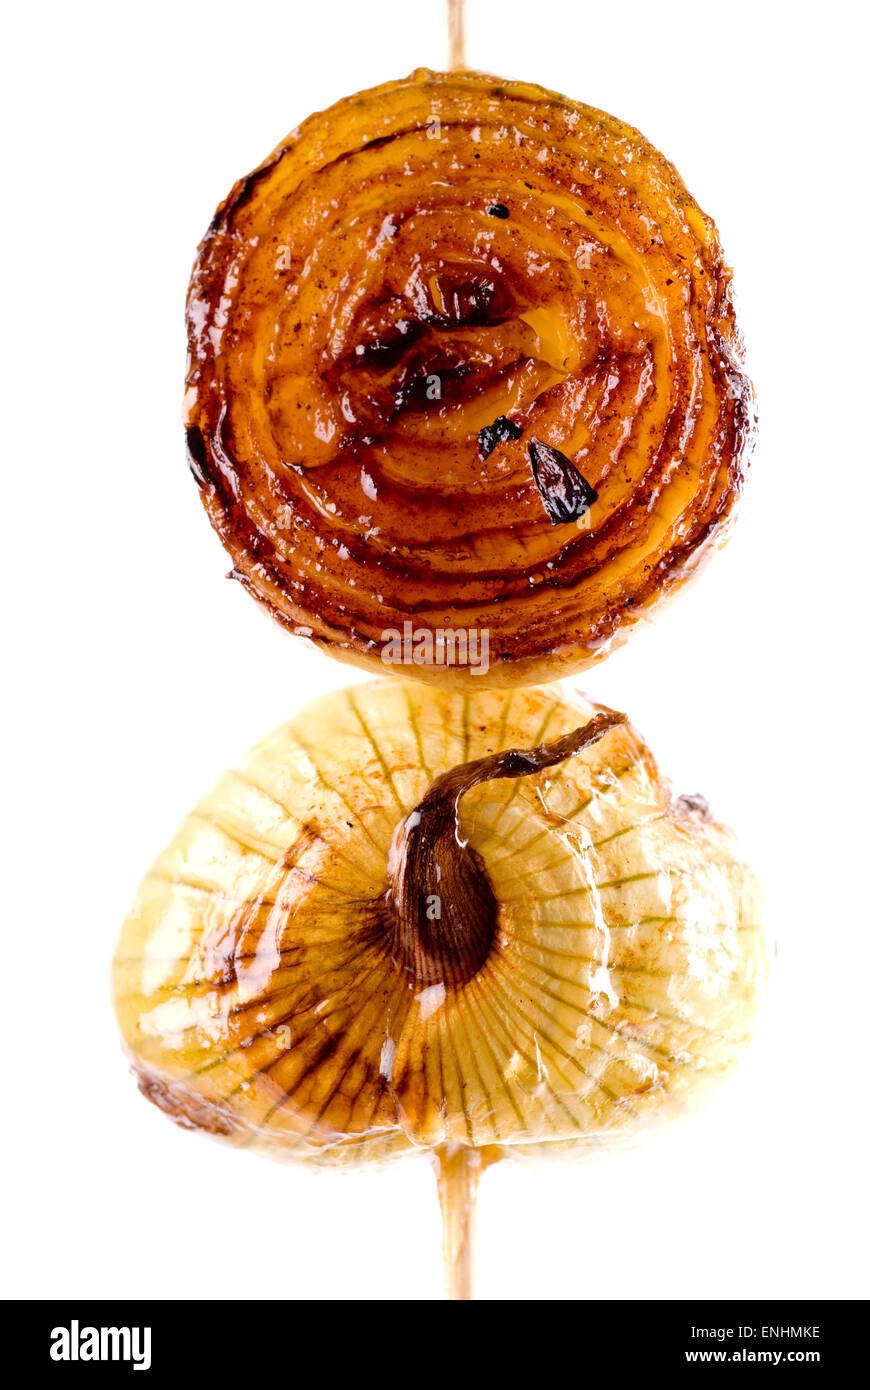 Grilled onion marinated in butter, olive oil and honey. - Stock Image